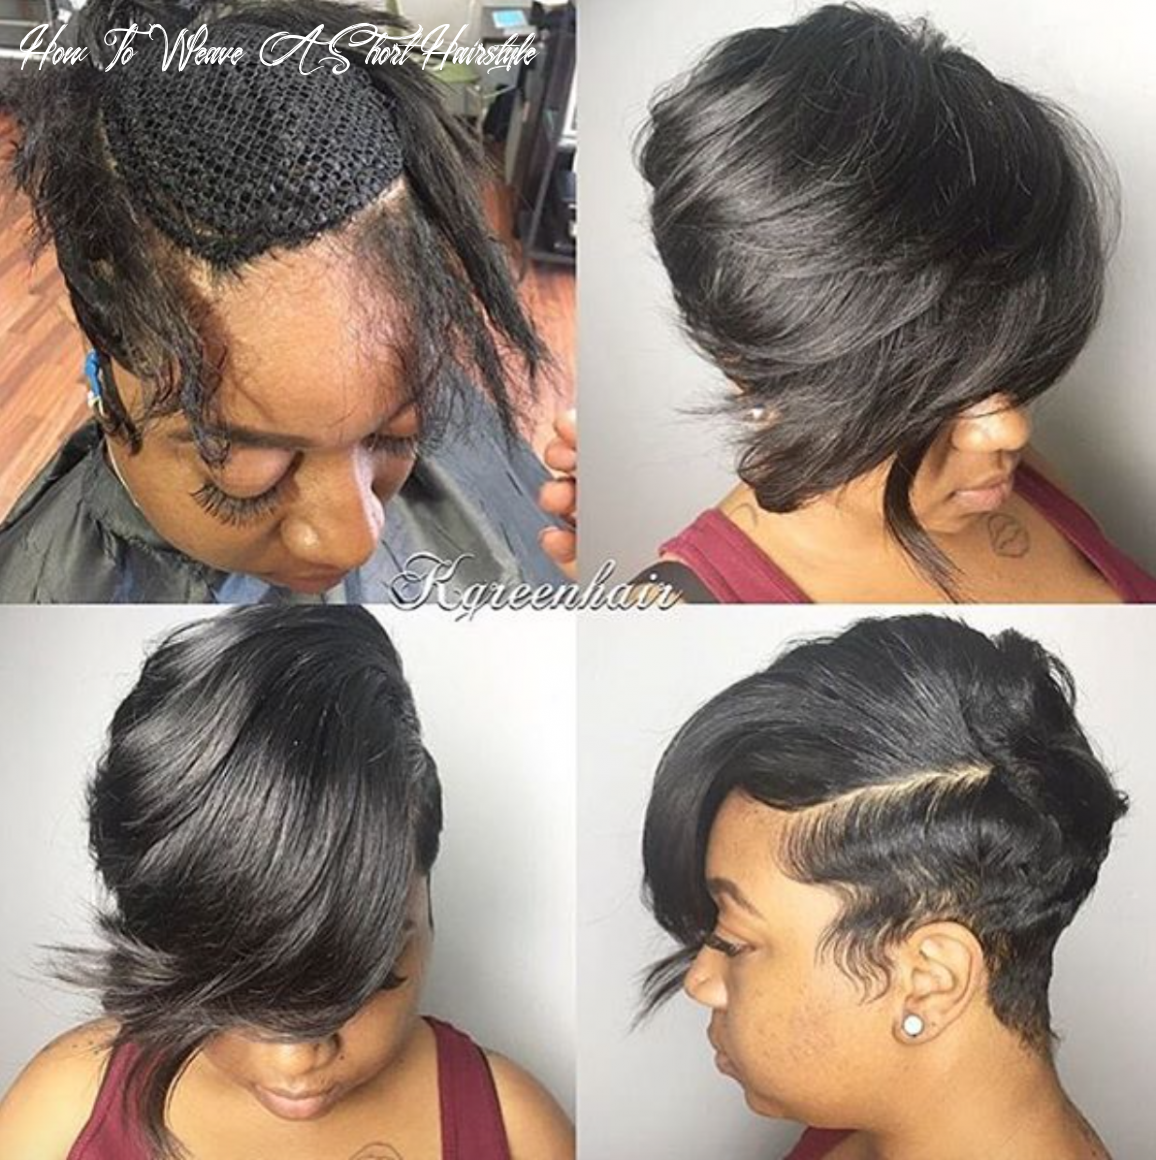 Nice short sew in by @k green hair read the article here http